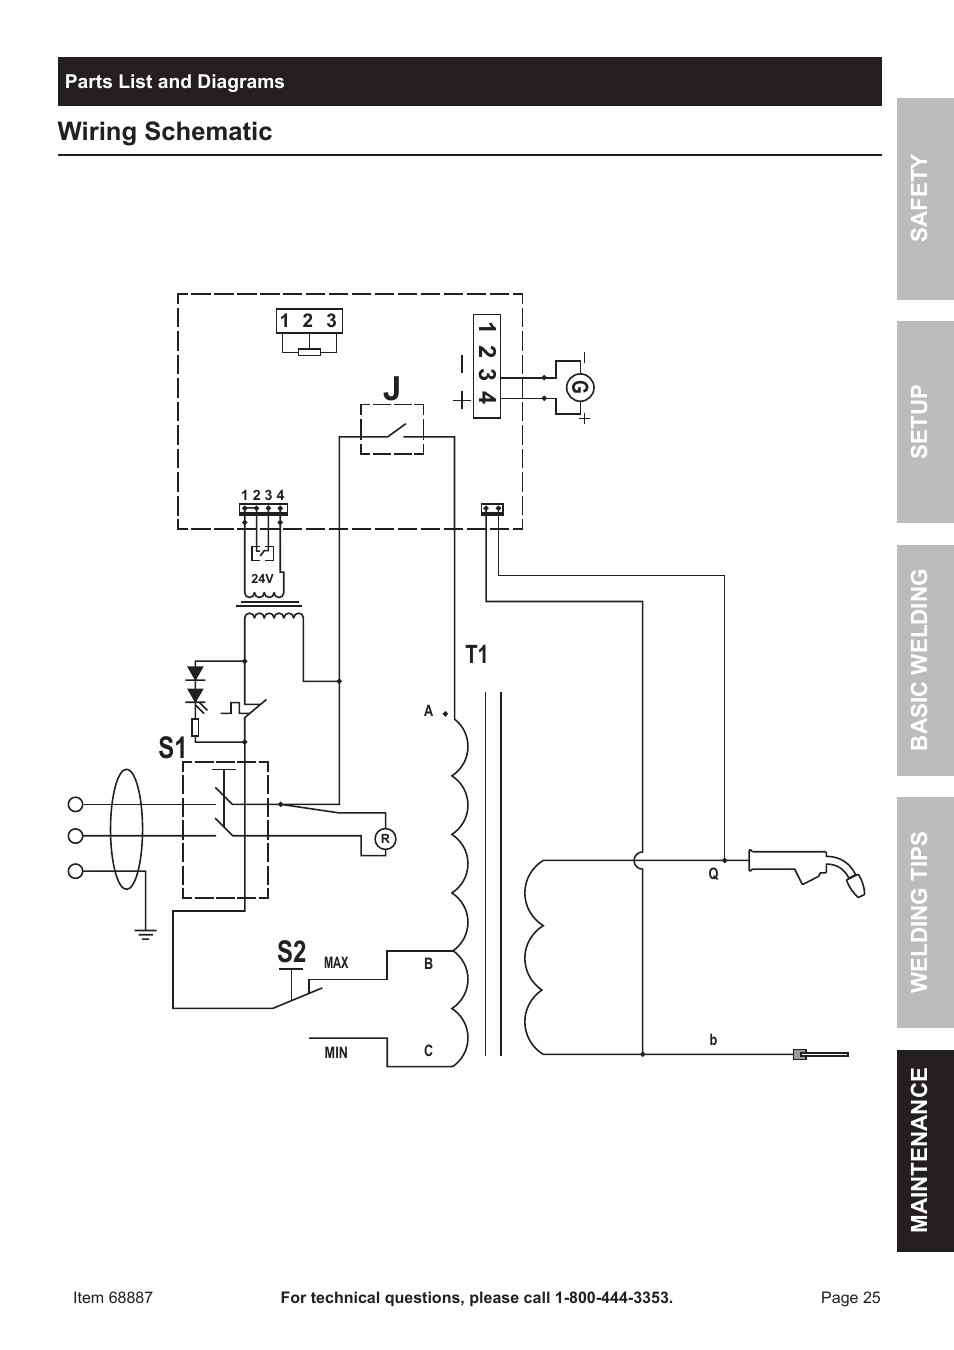 wrg 4272] 1az ecm wire diagram